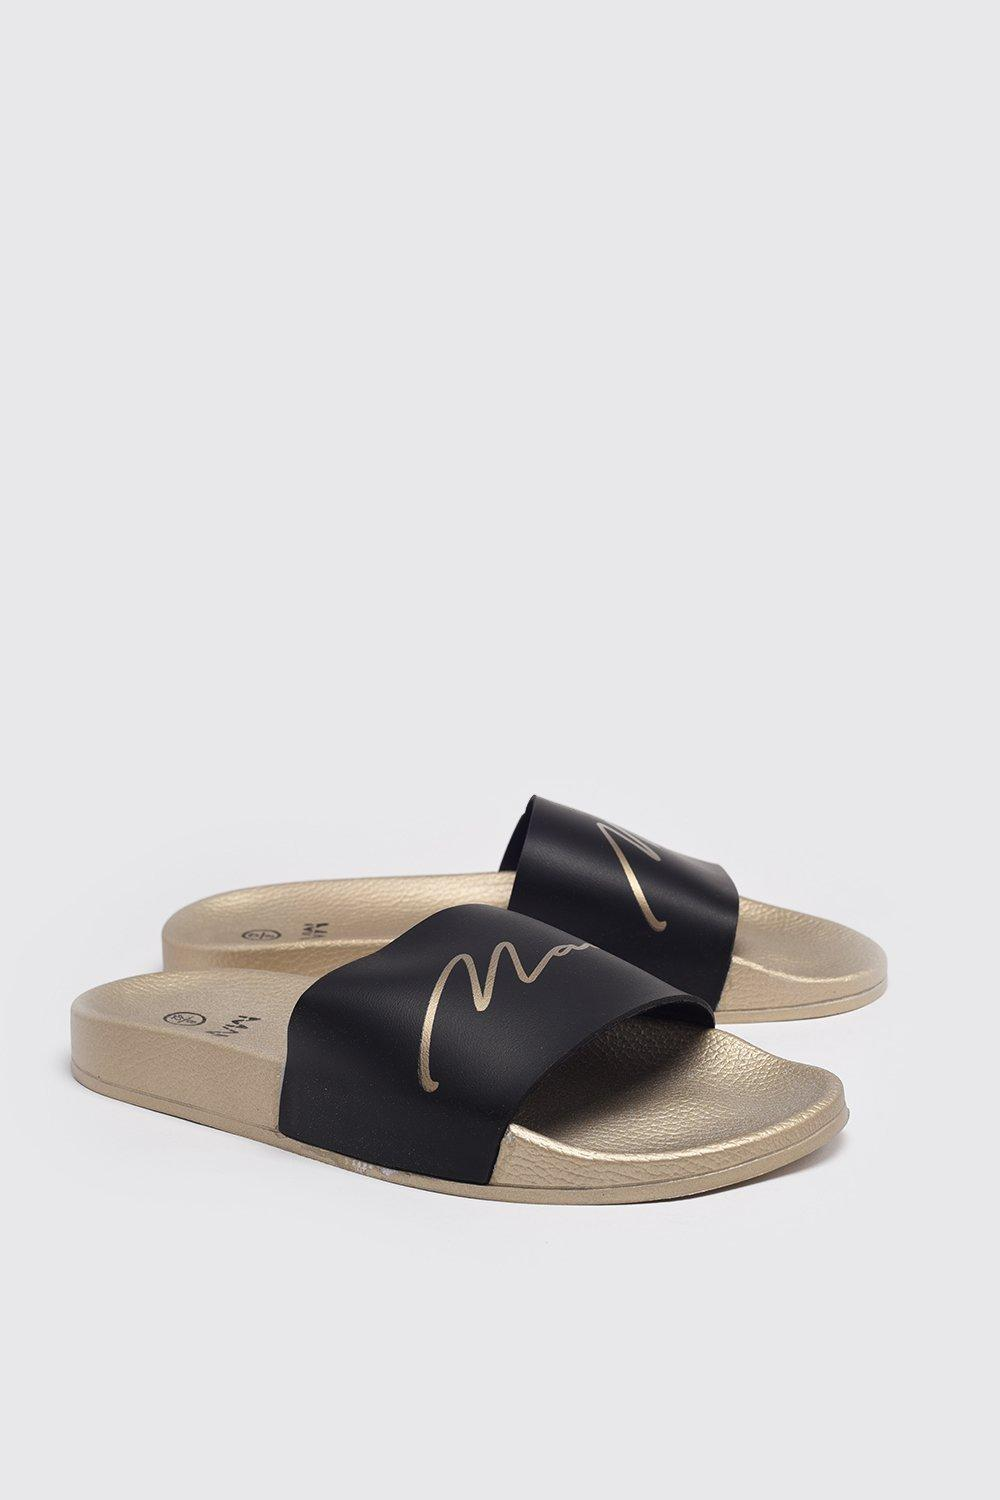 mens man gold sliders - metallics